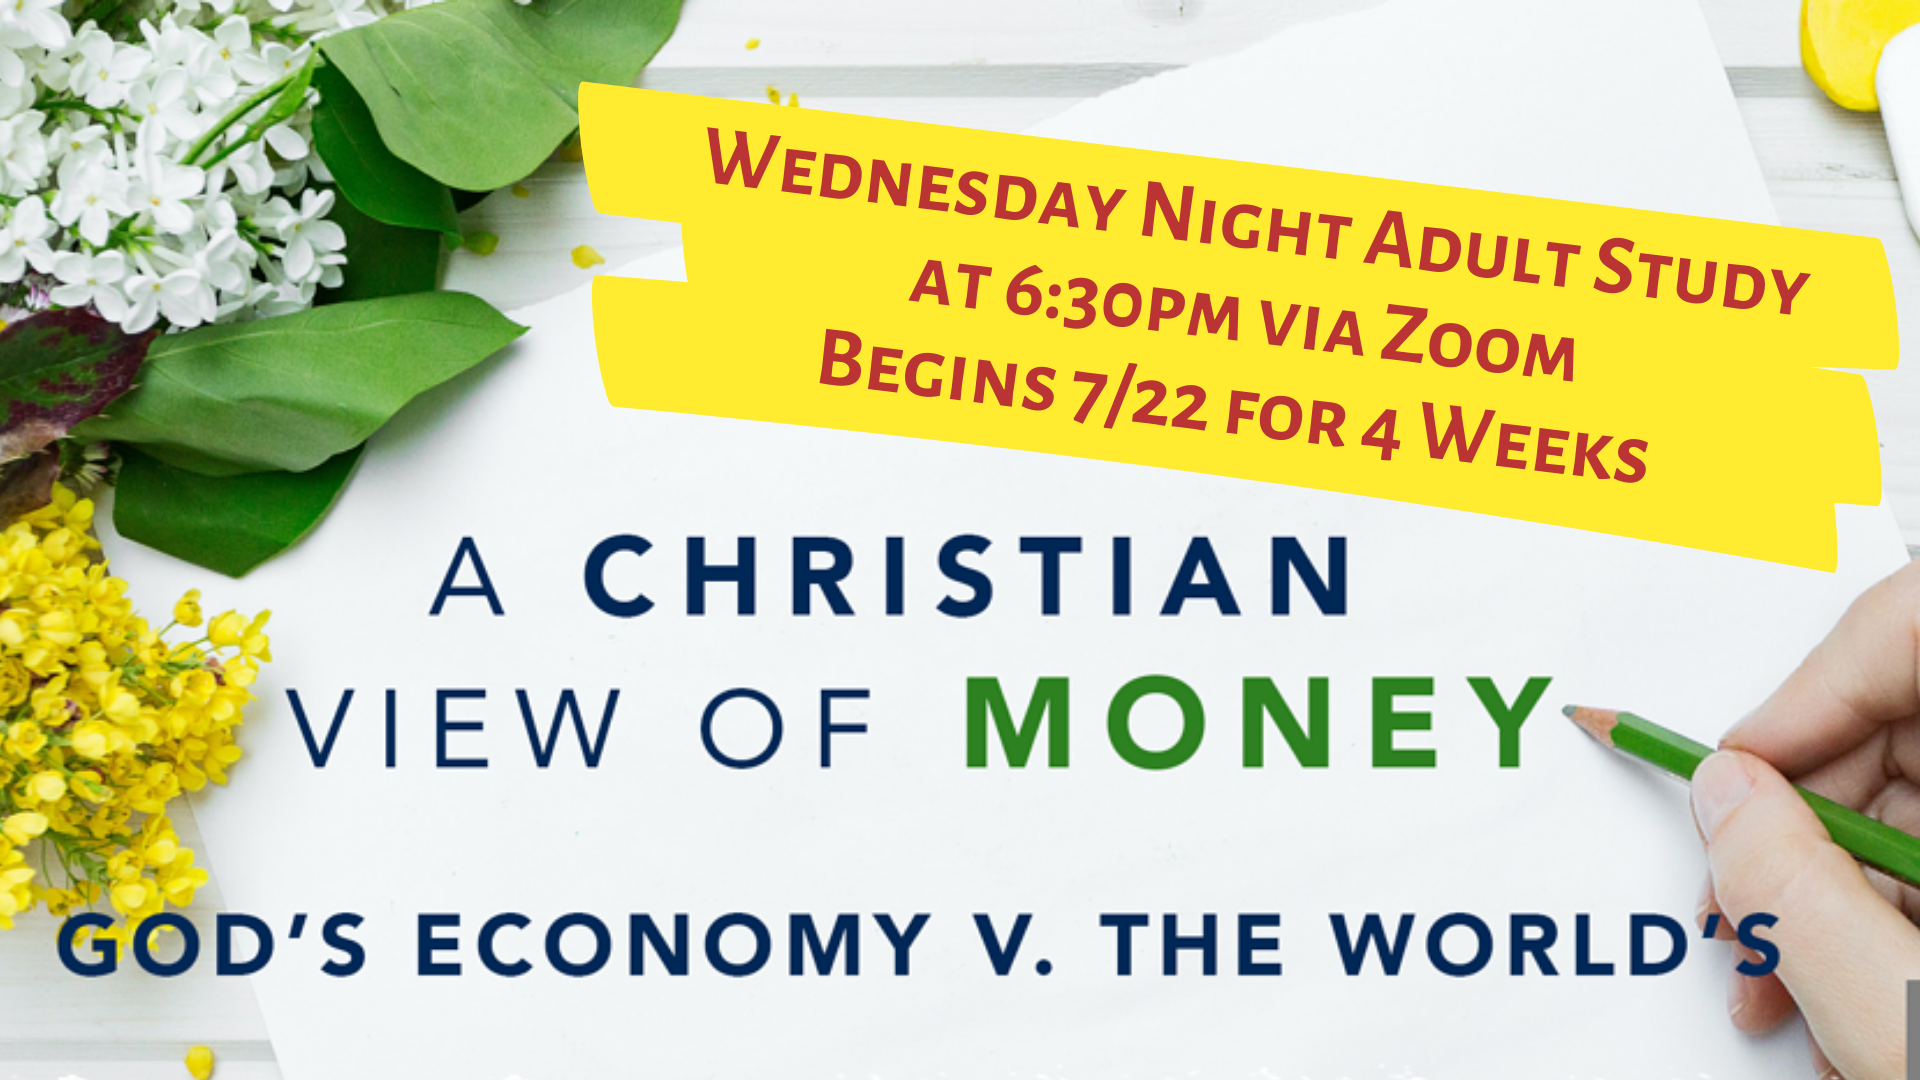 Christian View of $ announcement slide (1)